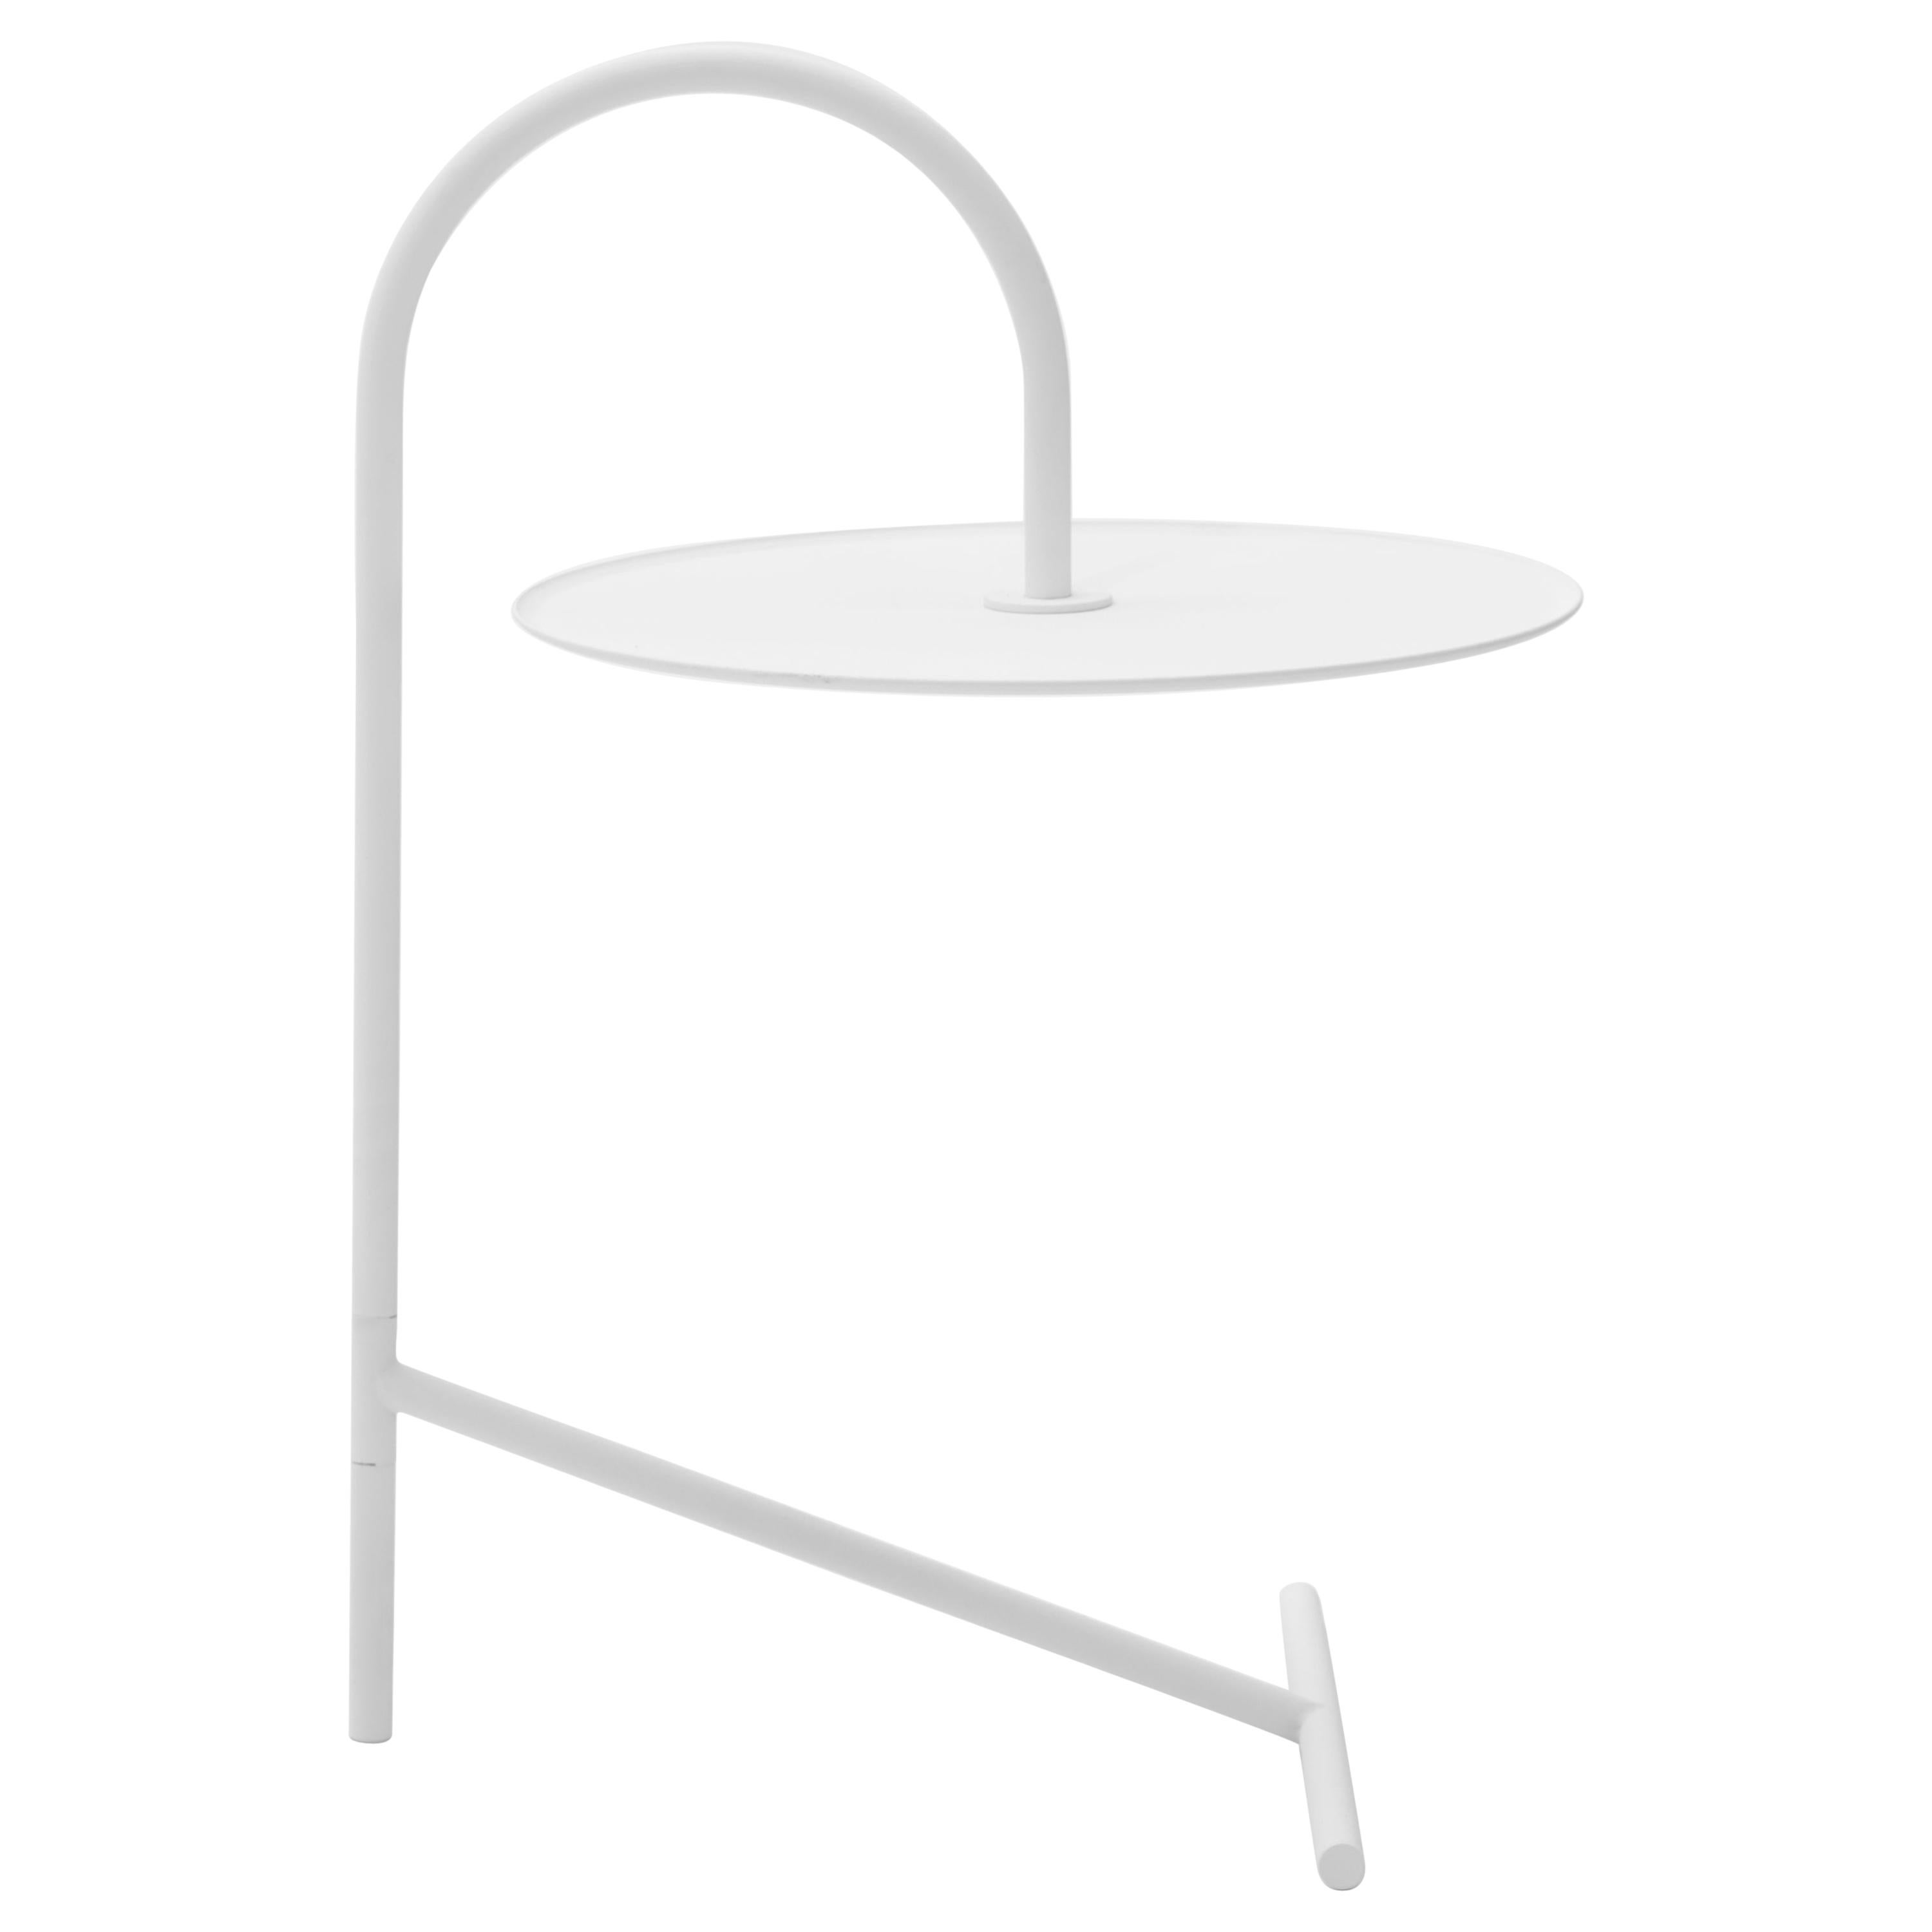 MELT, minimalistic white steel side coffee TABLE by oitoproducts